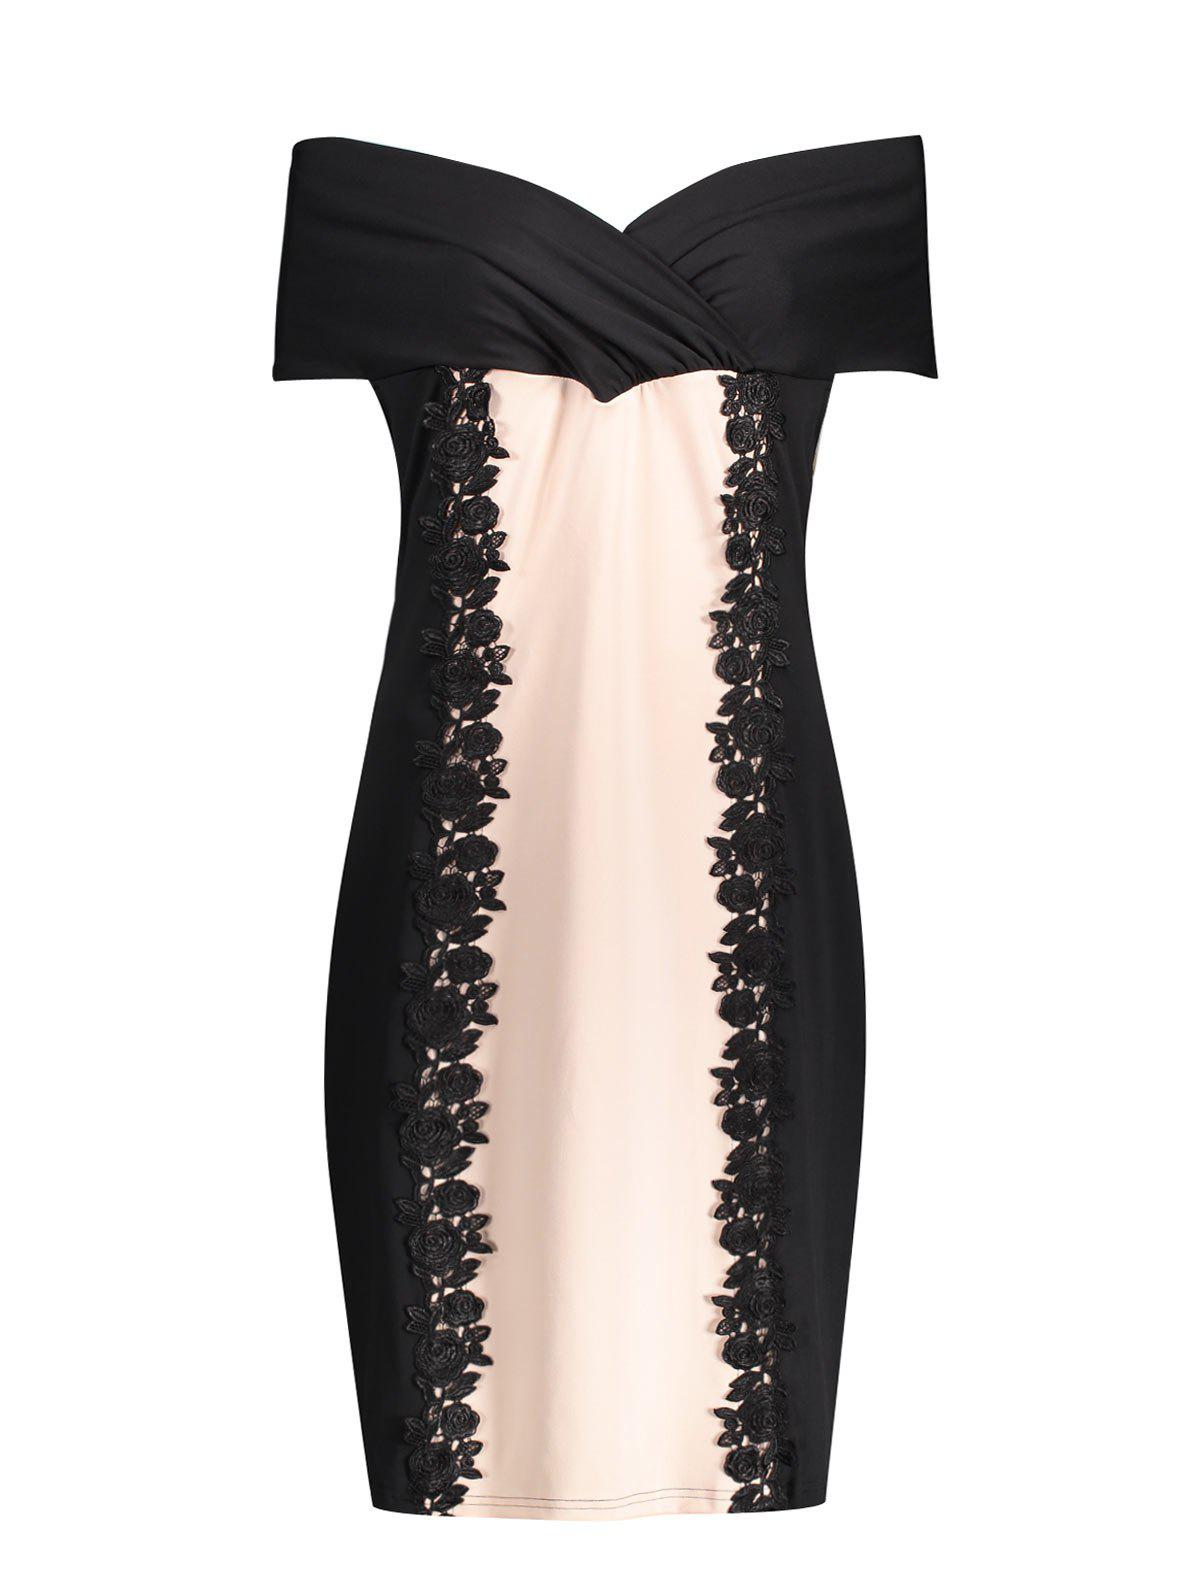 Plus Size Off The Shoulder Sheath Formal DressWOMEN<br><br>Size: 4XL; Color: BLACK; Style: Club; Material: Cotton Blend,Polyester; Silhouette: Sheath; Dresses Length: Knee-Length; Neckline: Off The Shoulder; Sleeve Length: Short Sleeves; Embellishment: Appliques,Lace; Pattern Type: Others; With Belt: No; Season: Spring,Summer; Weight: 0.3300kg; Package Contents: 1 x Dress;